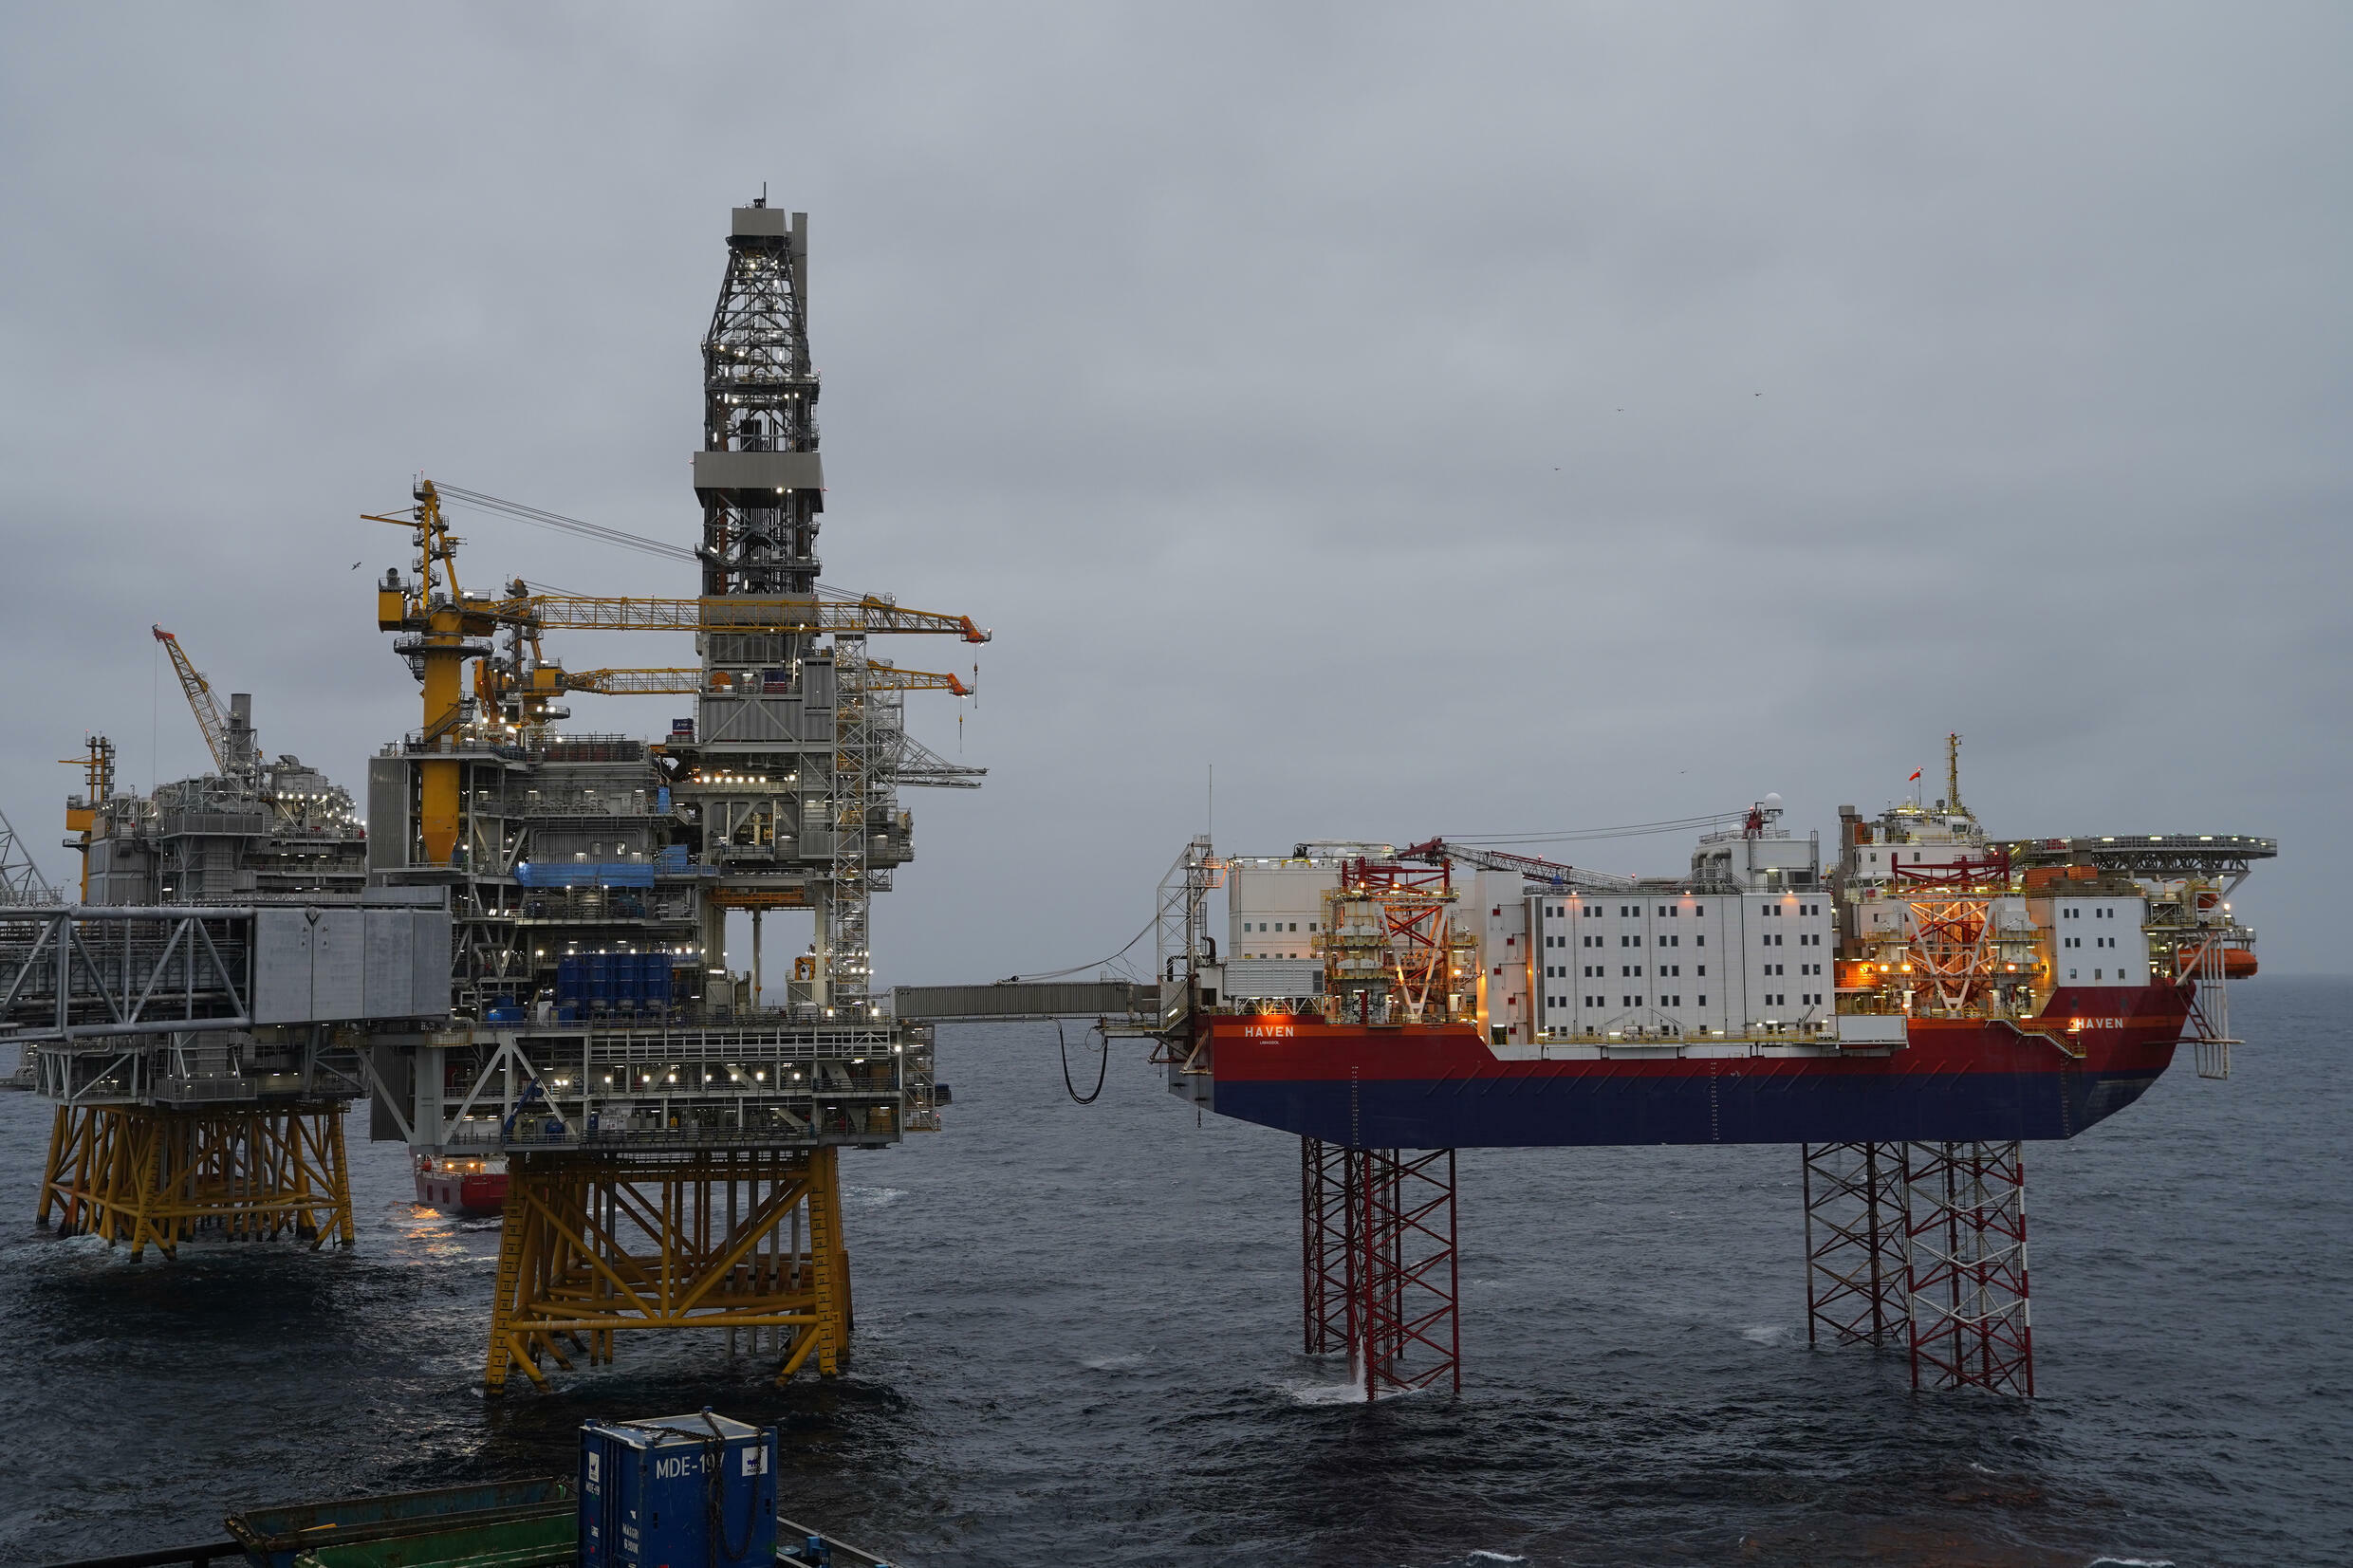 Norway is western Europe's biggest oil producer